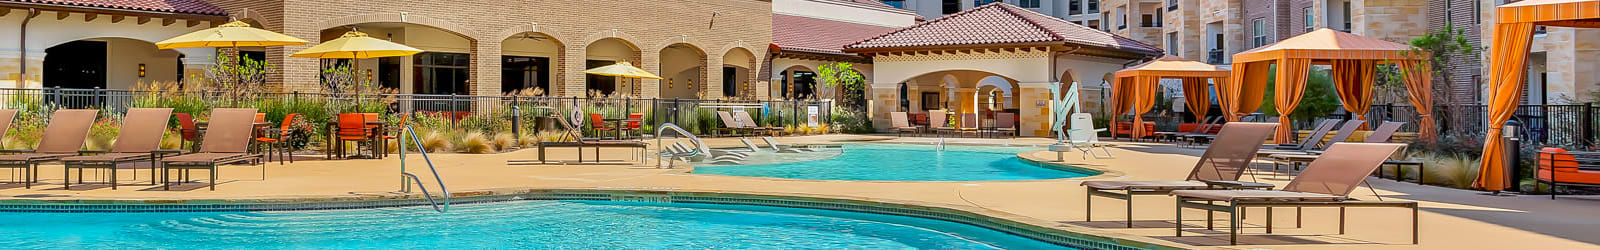 Guest suites at Villas at the Rim in San Antonio, Texas